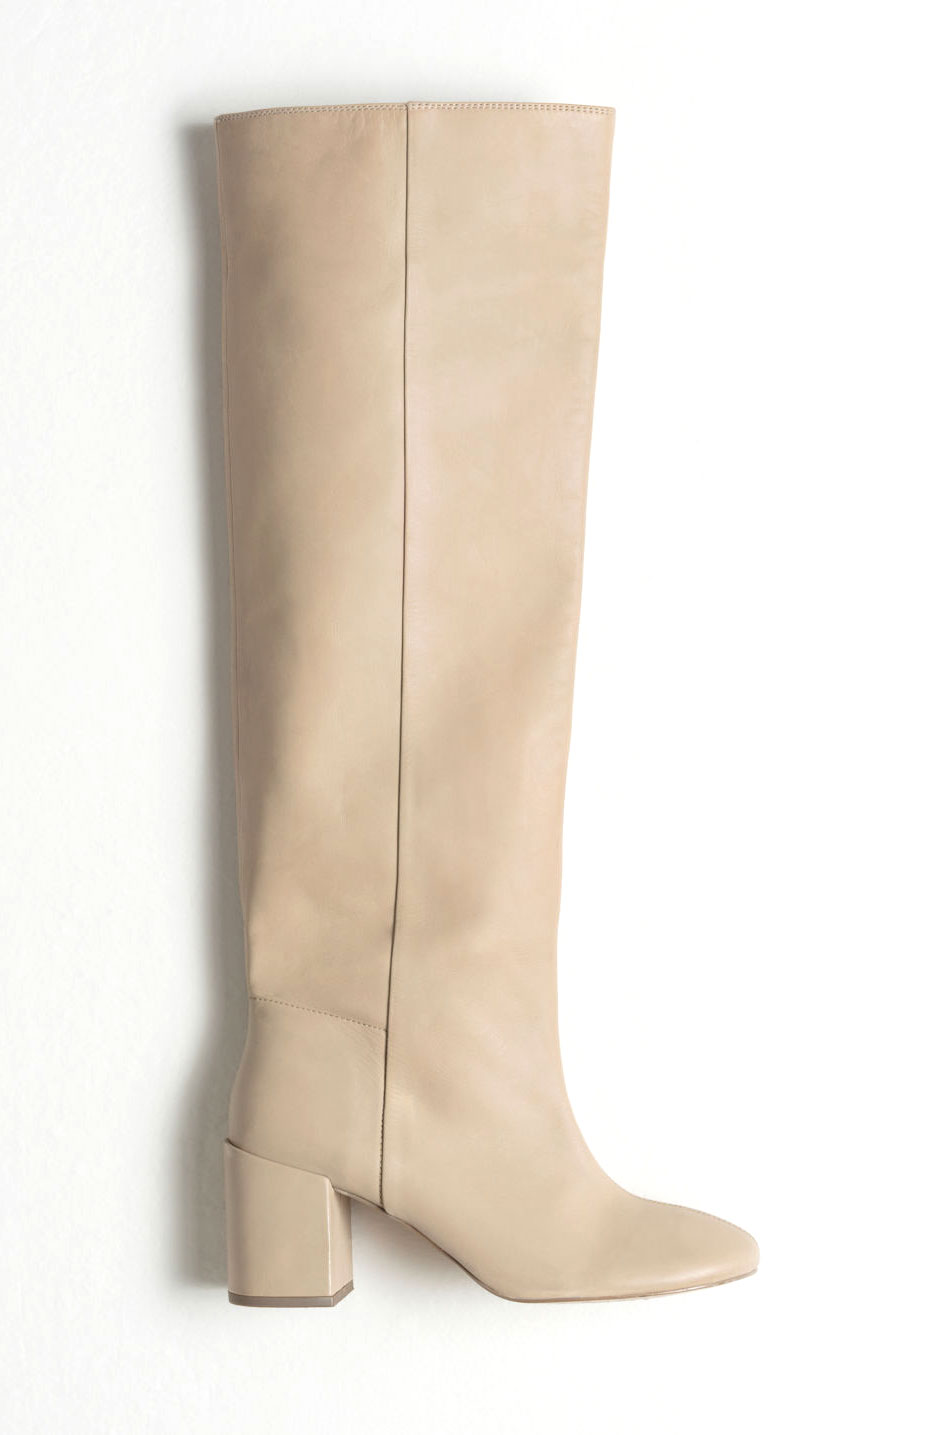 & Other Stories Boot     $279